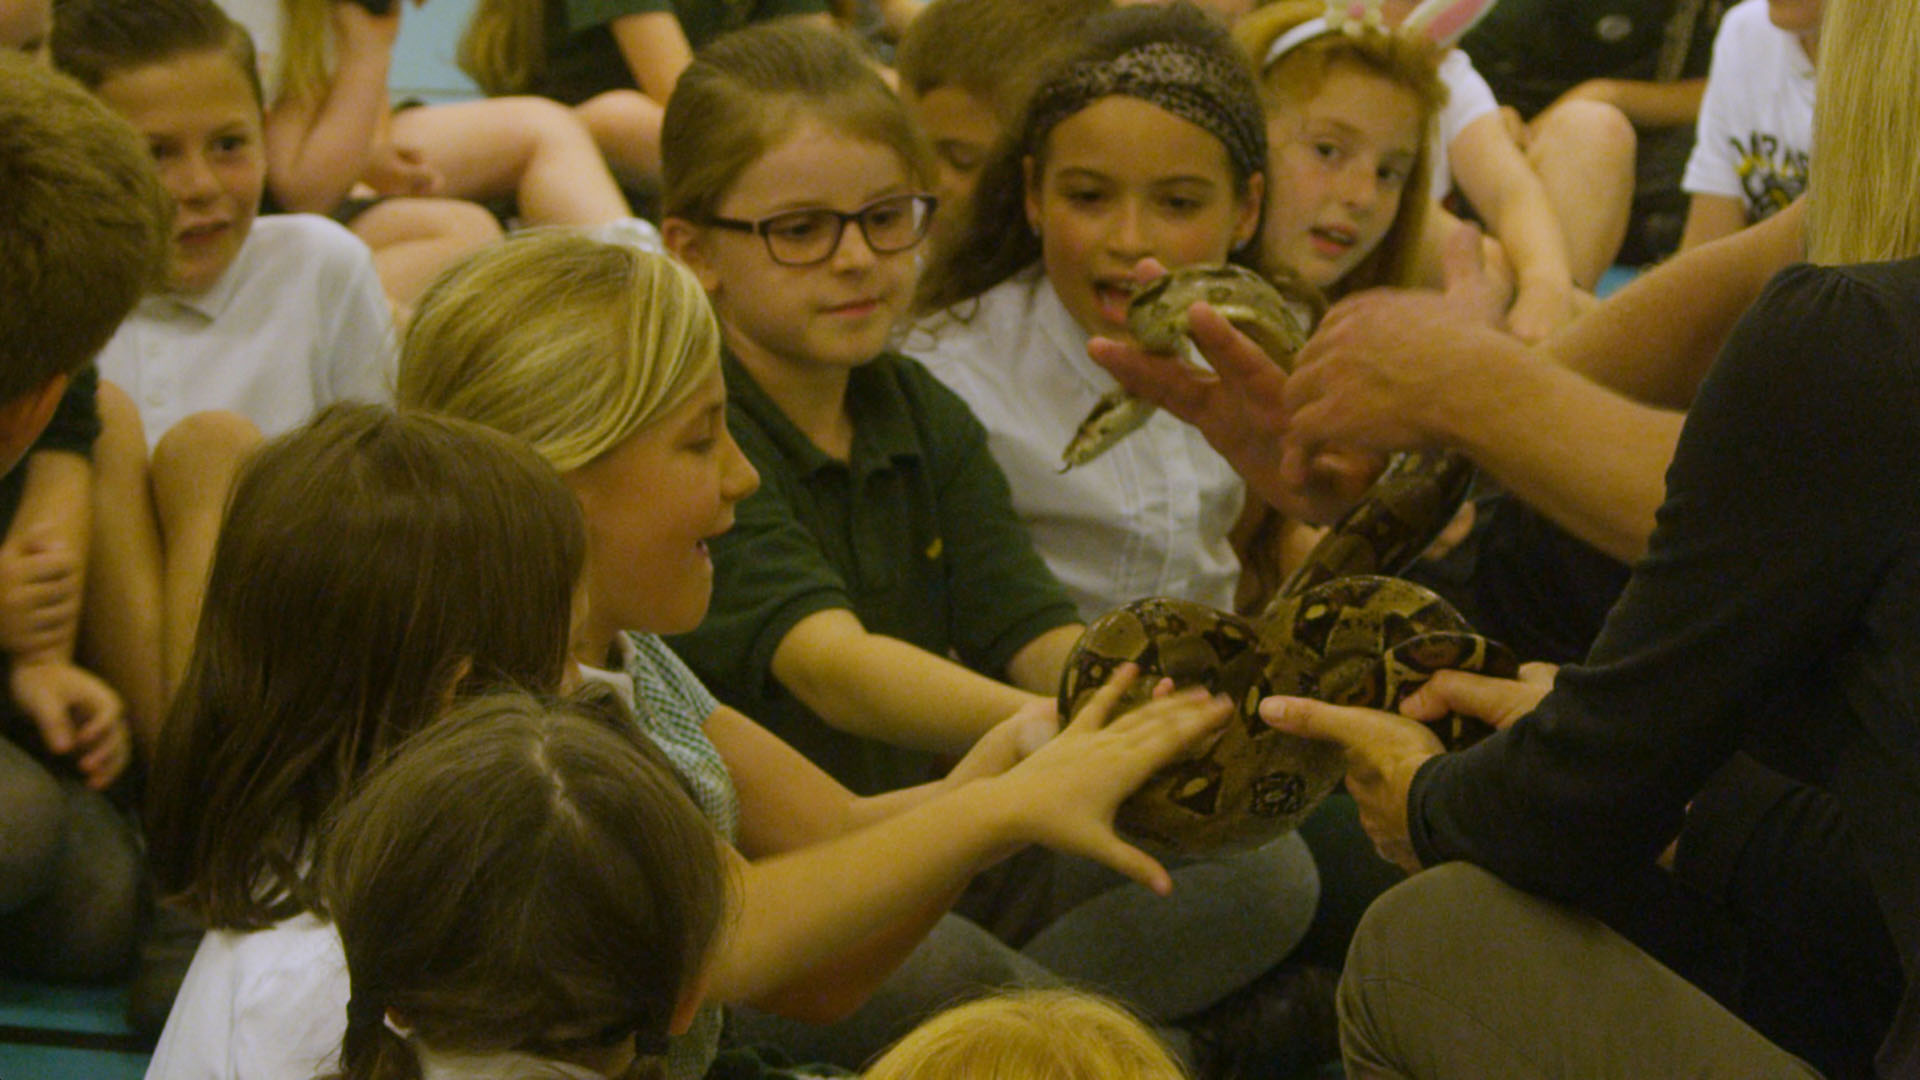 School children holding a snake